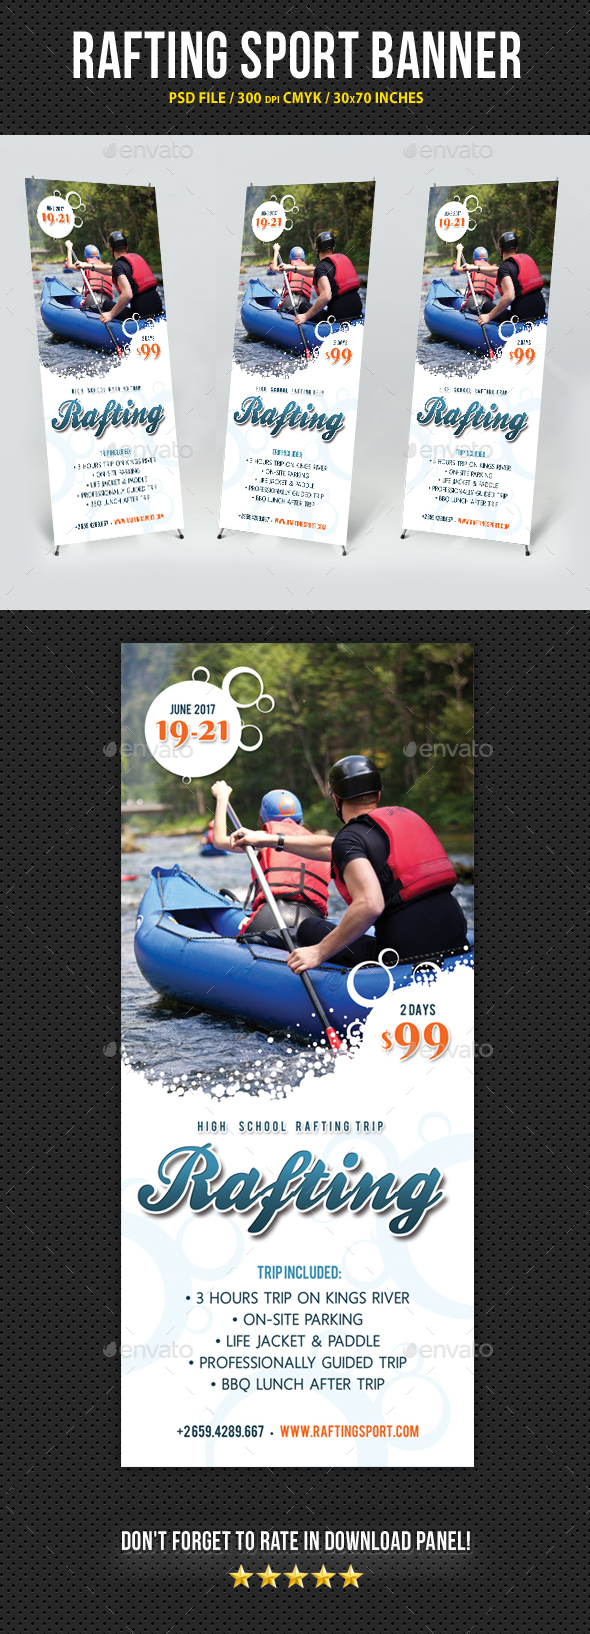 Rafting Banner Sport Template V2 - Signage Print Templates